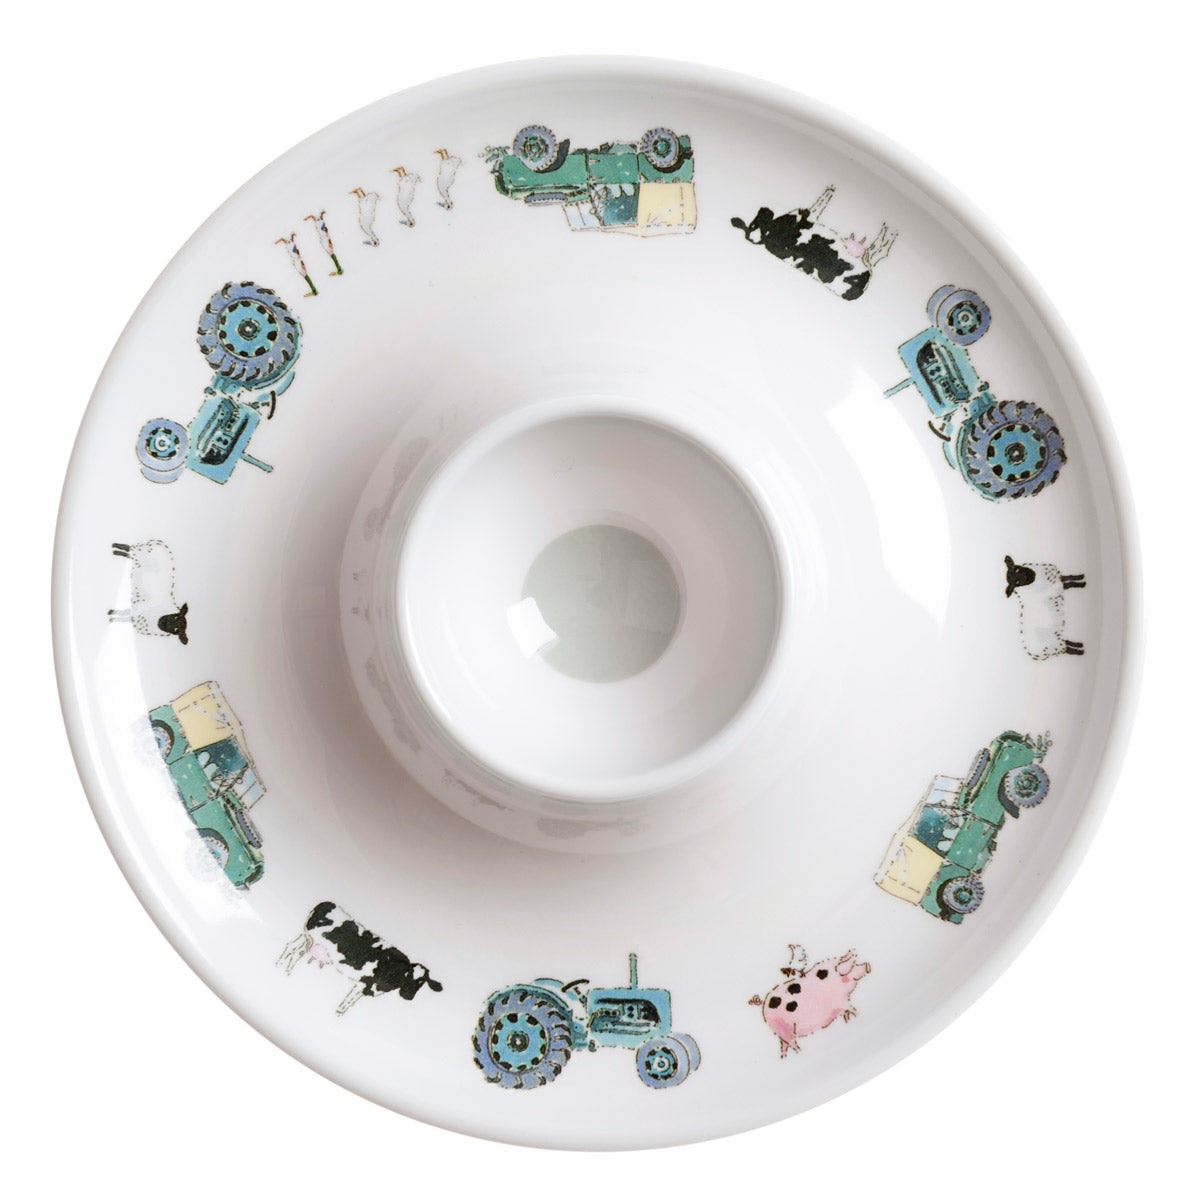 On The Farm Kid's Melamine Egg Cup Saucer